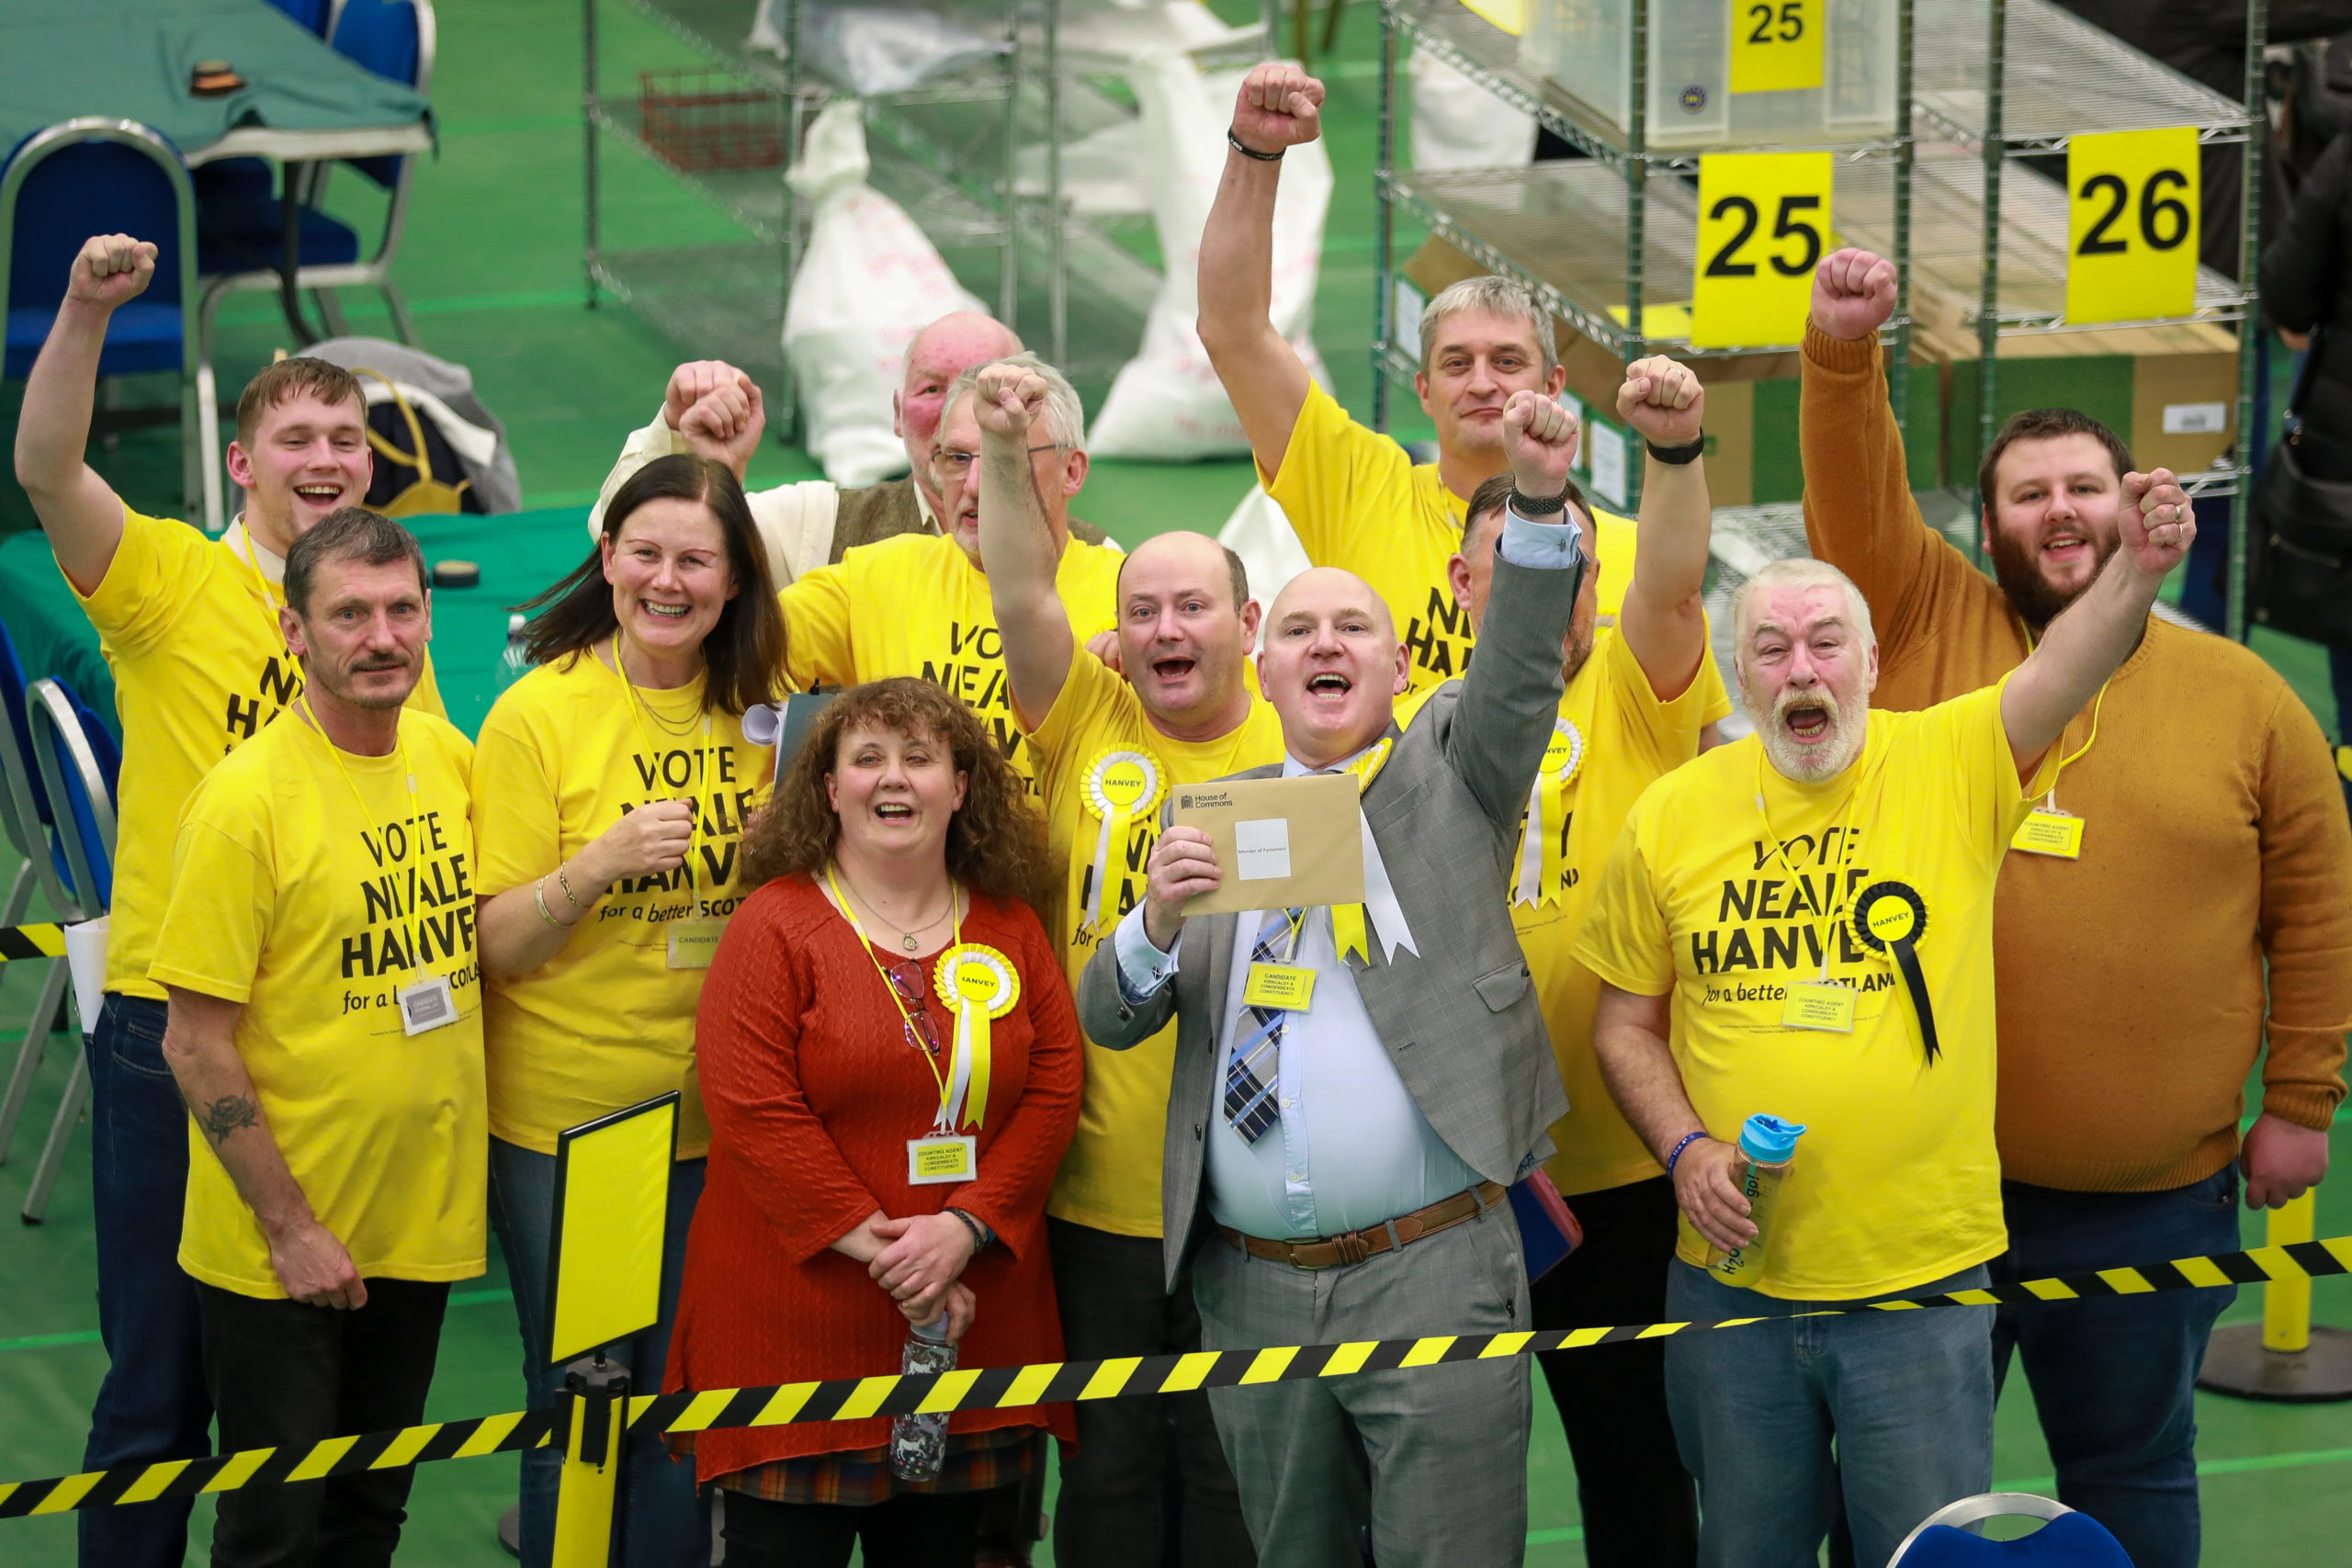 Neale Hanvey and supporters celebrate after his General Election victory.